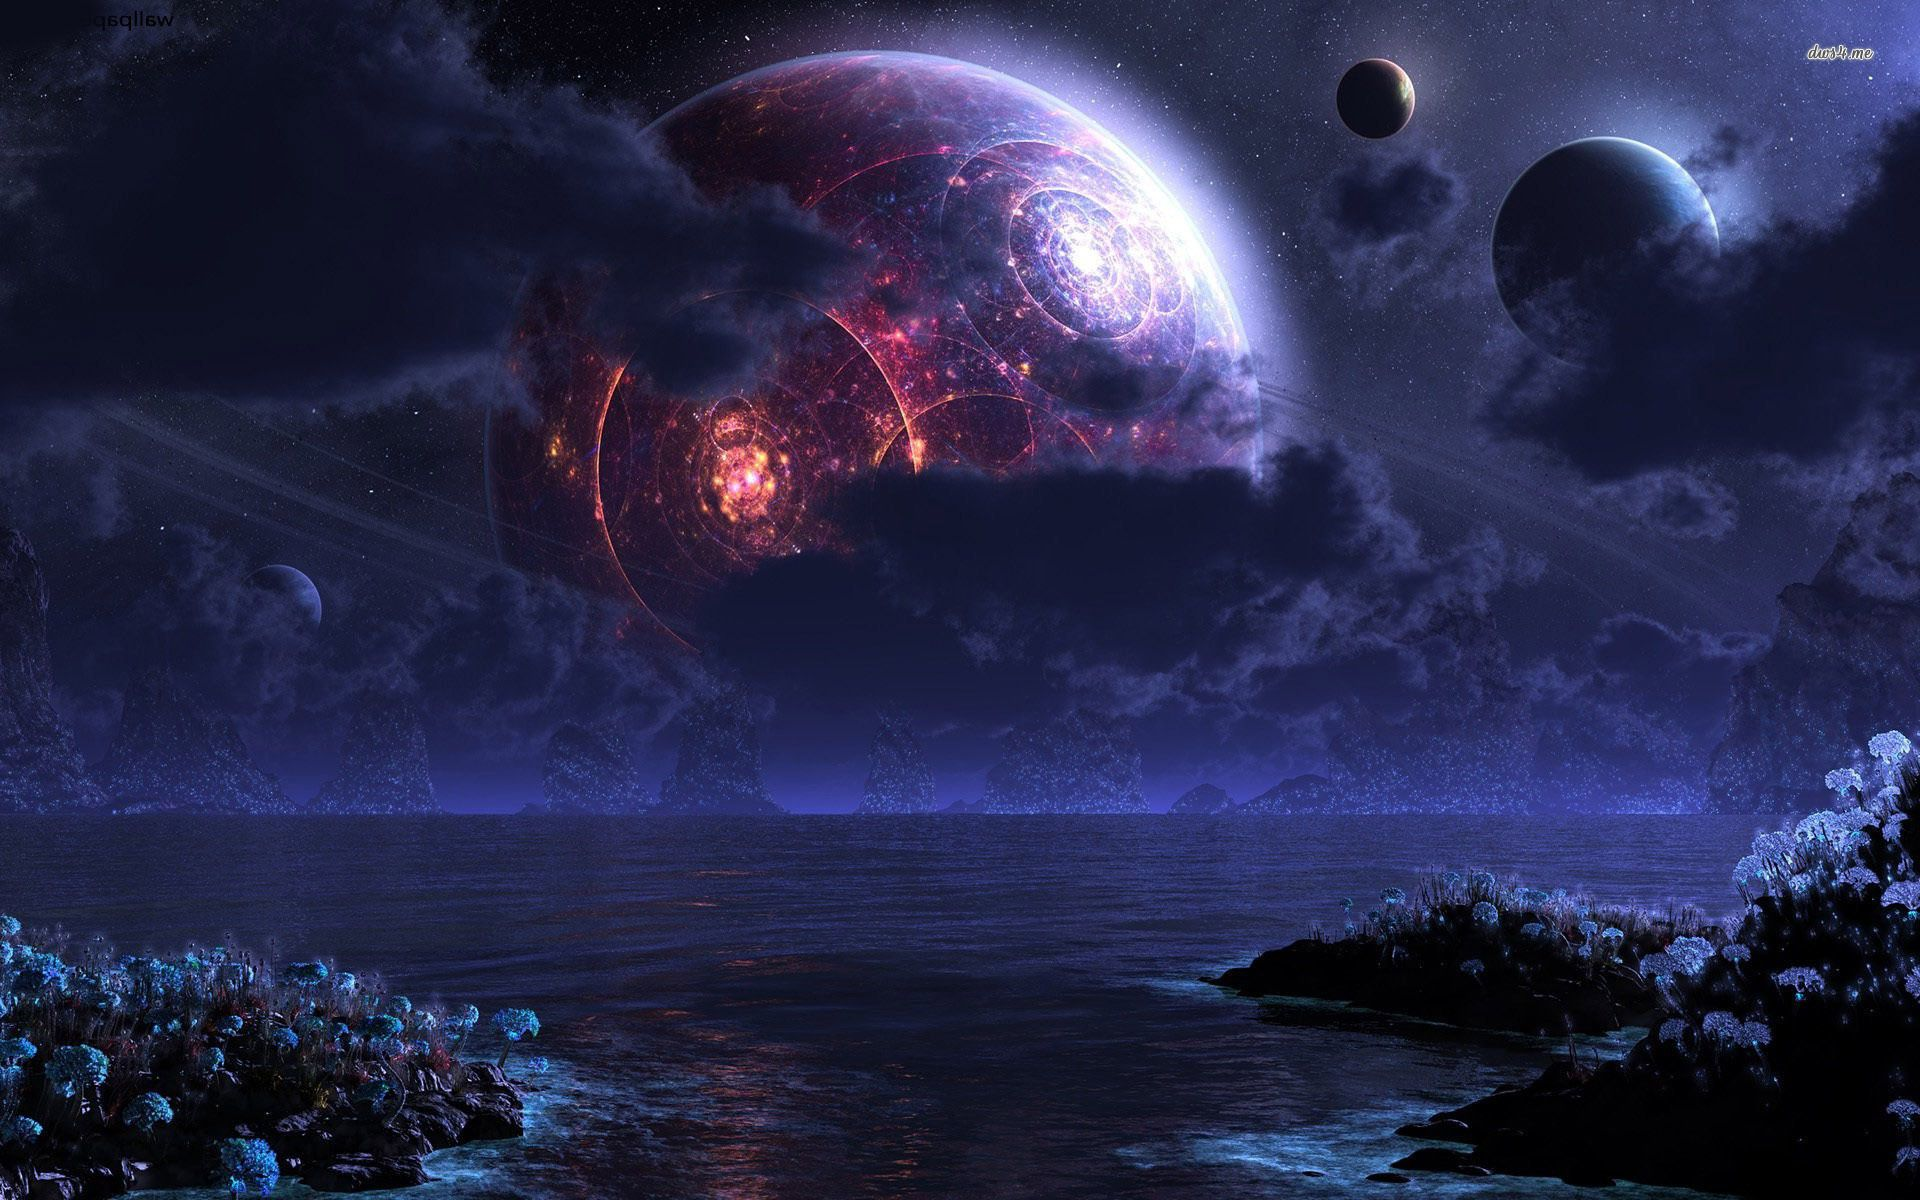 18 Fantasy Astronomy Hd Wallpapers: Pin By Joe Burrascano On Spathce